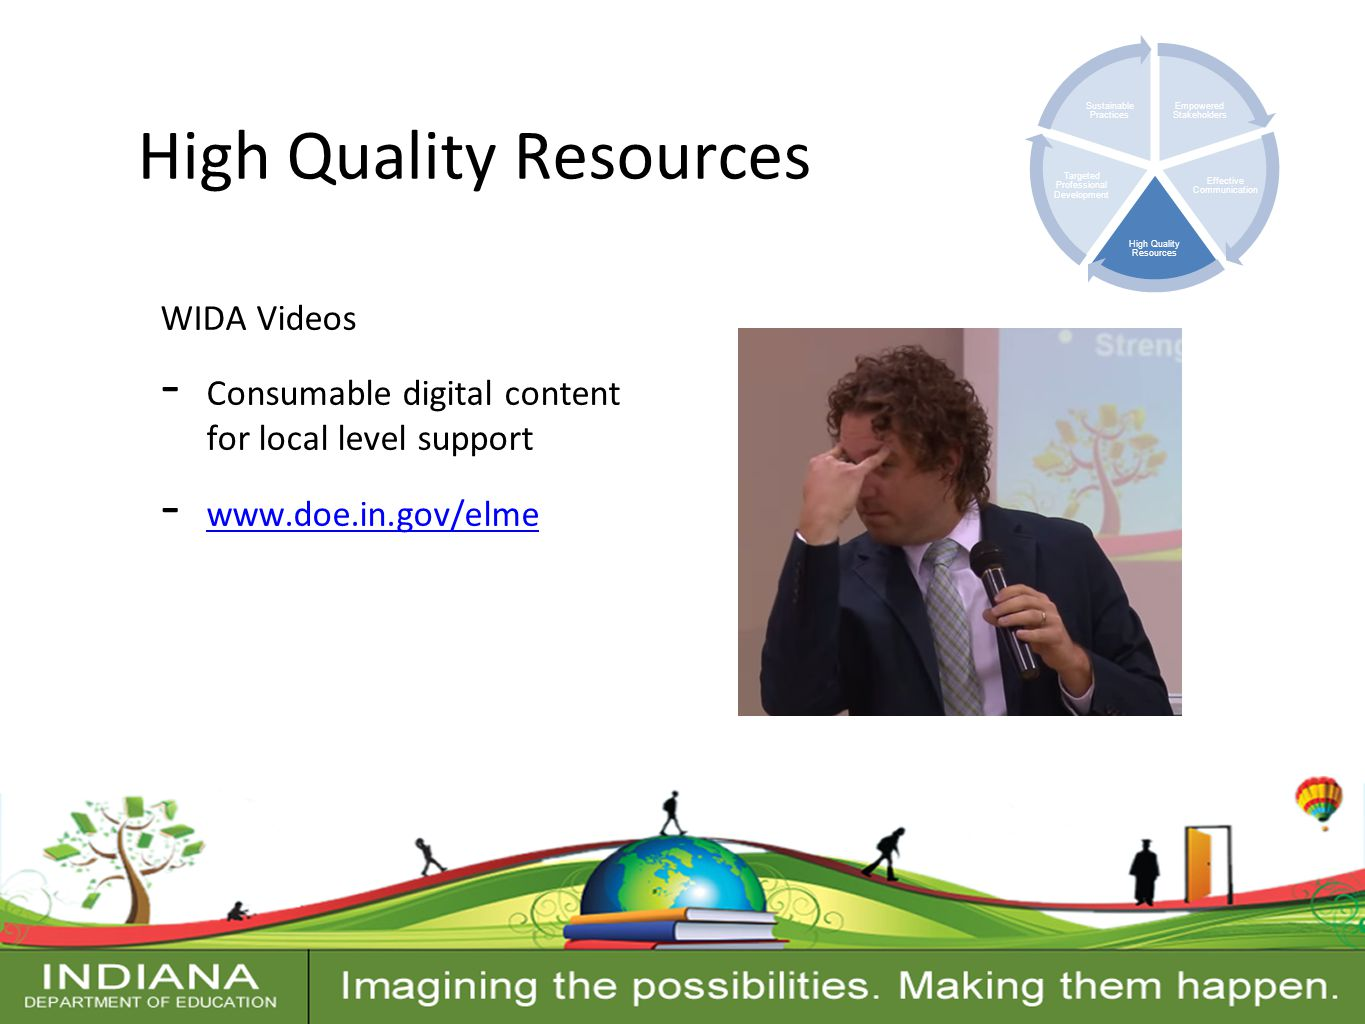 Contact Information High Quality Resources WIDA Videos - Consumable digital content for local level support - www.doe.in.gov/elme www.doe.in.gov/elme Empowered Stakeholders Effective Communication High Quality Resources Targeted Professional Development Sustainable Practices